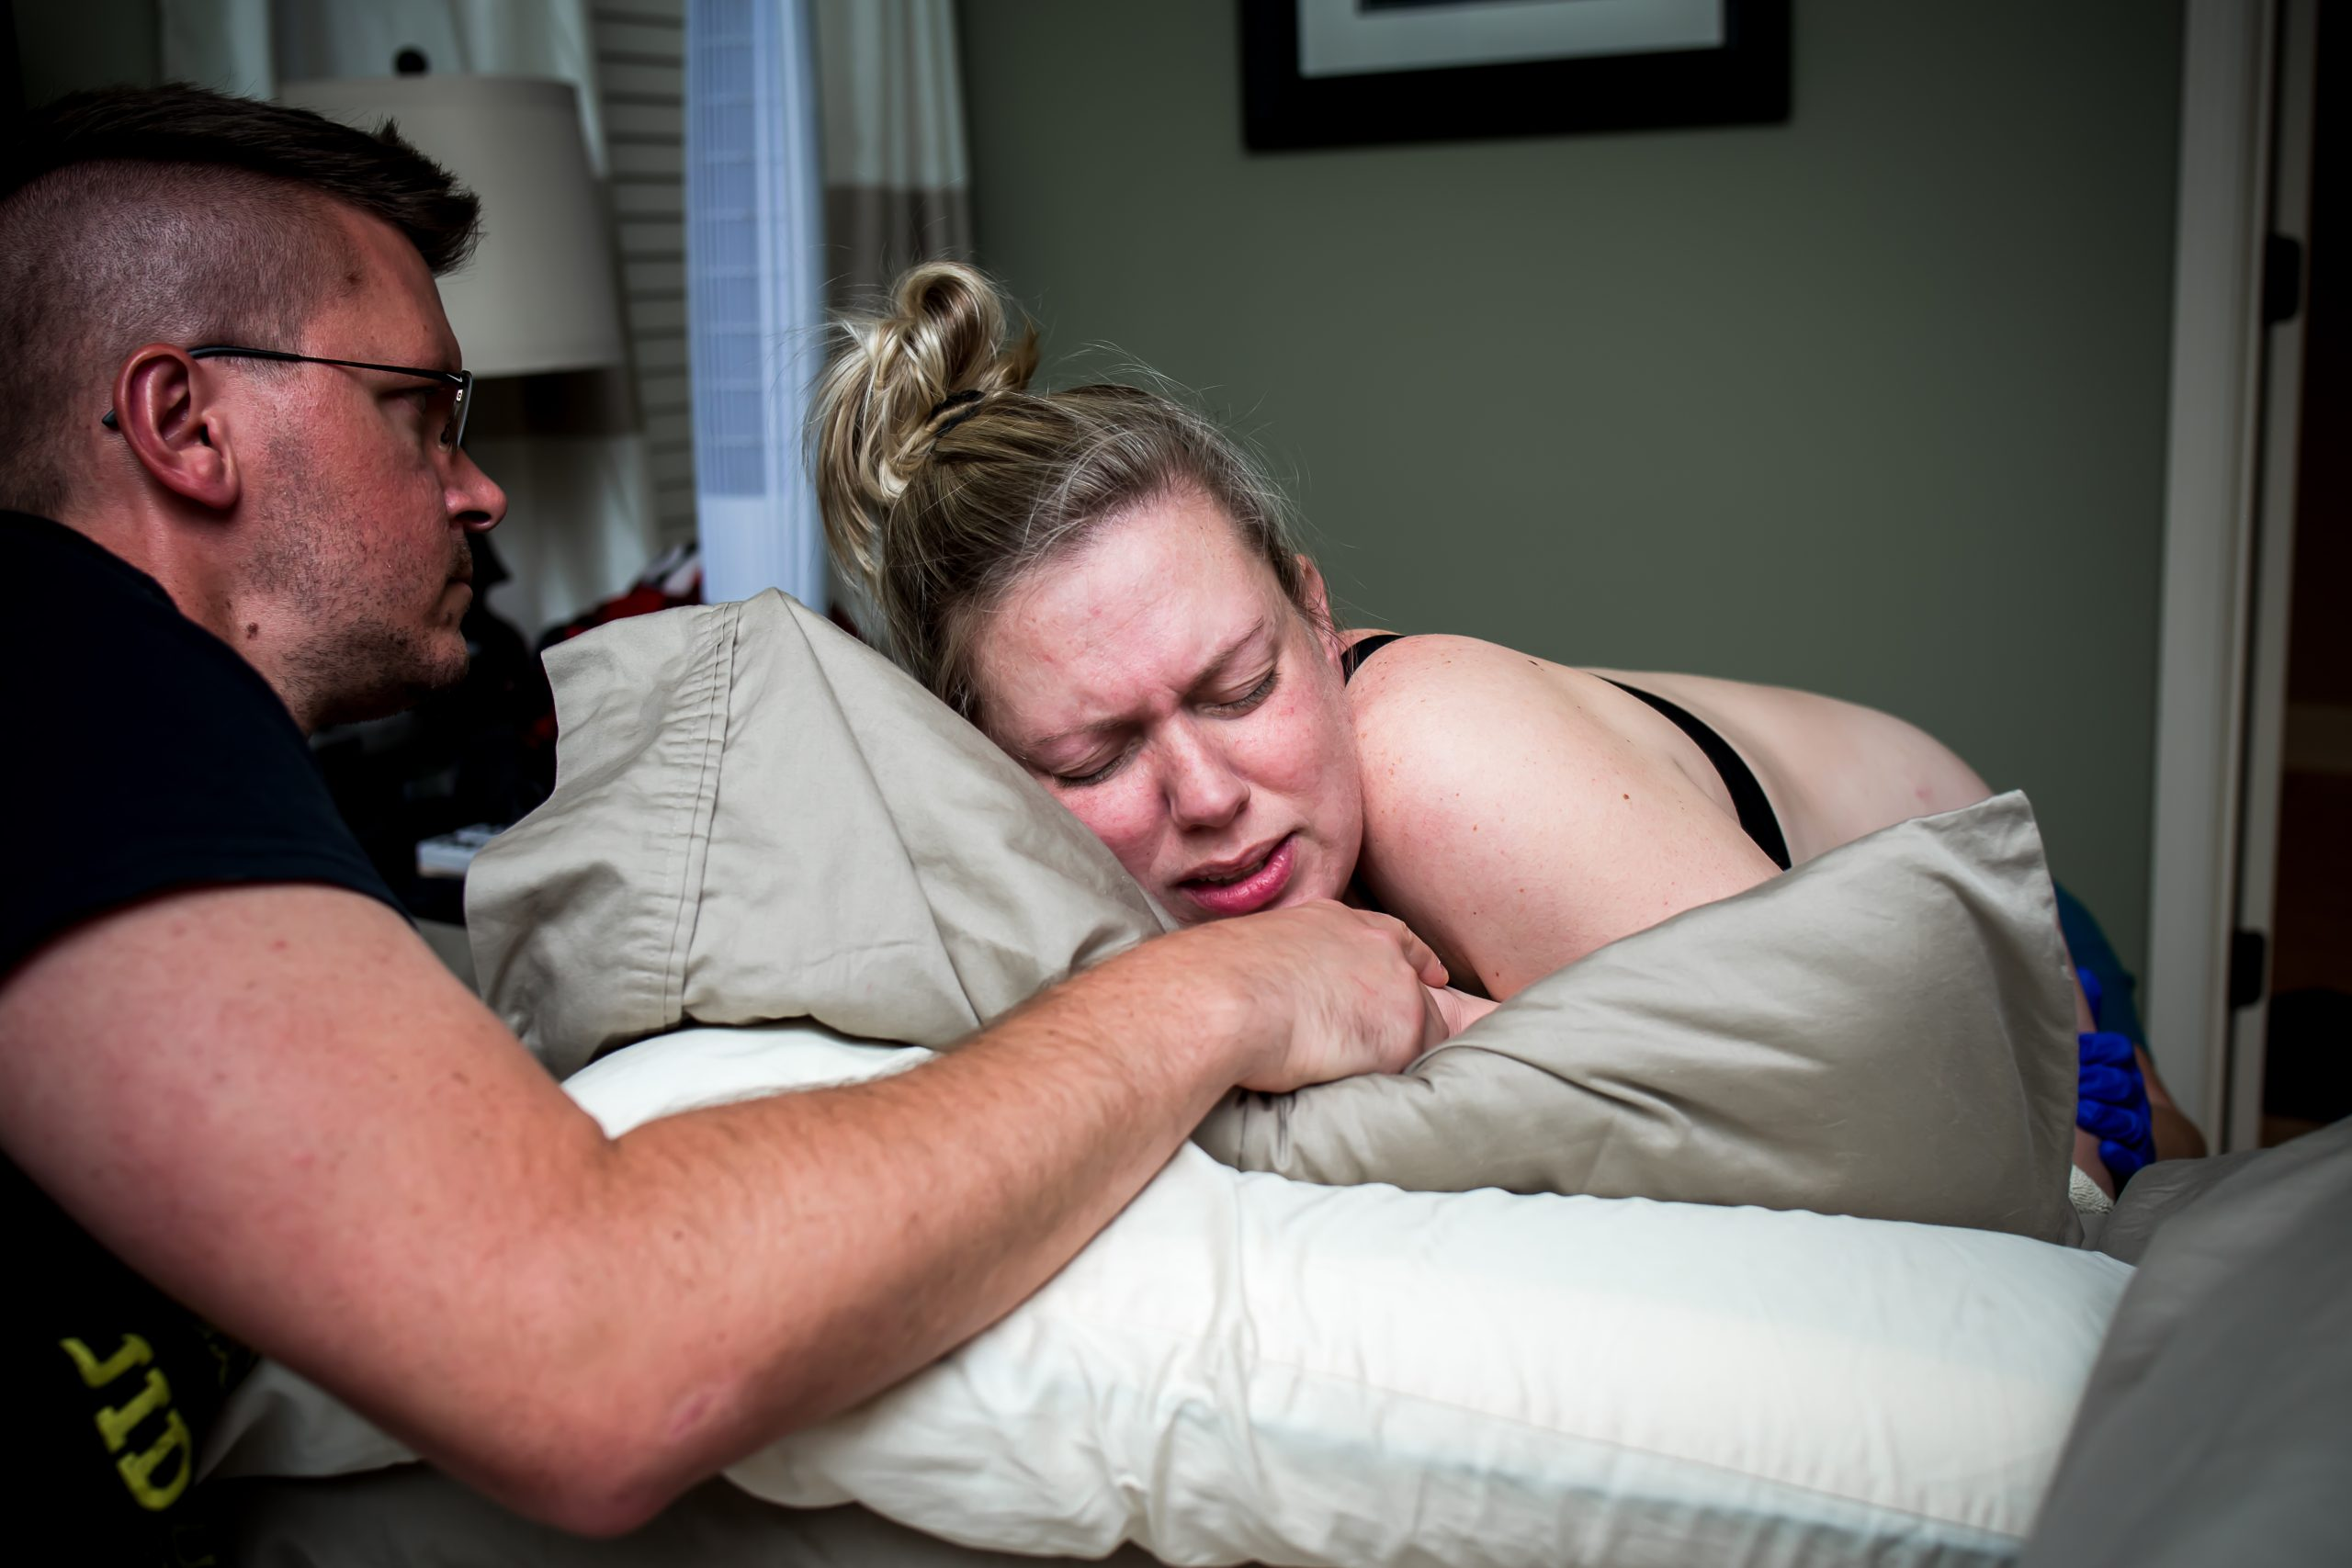 Woman labors at home leaning on her bed during home birth her husband is in front of her for support